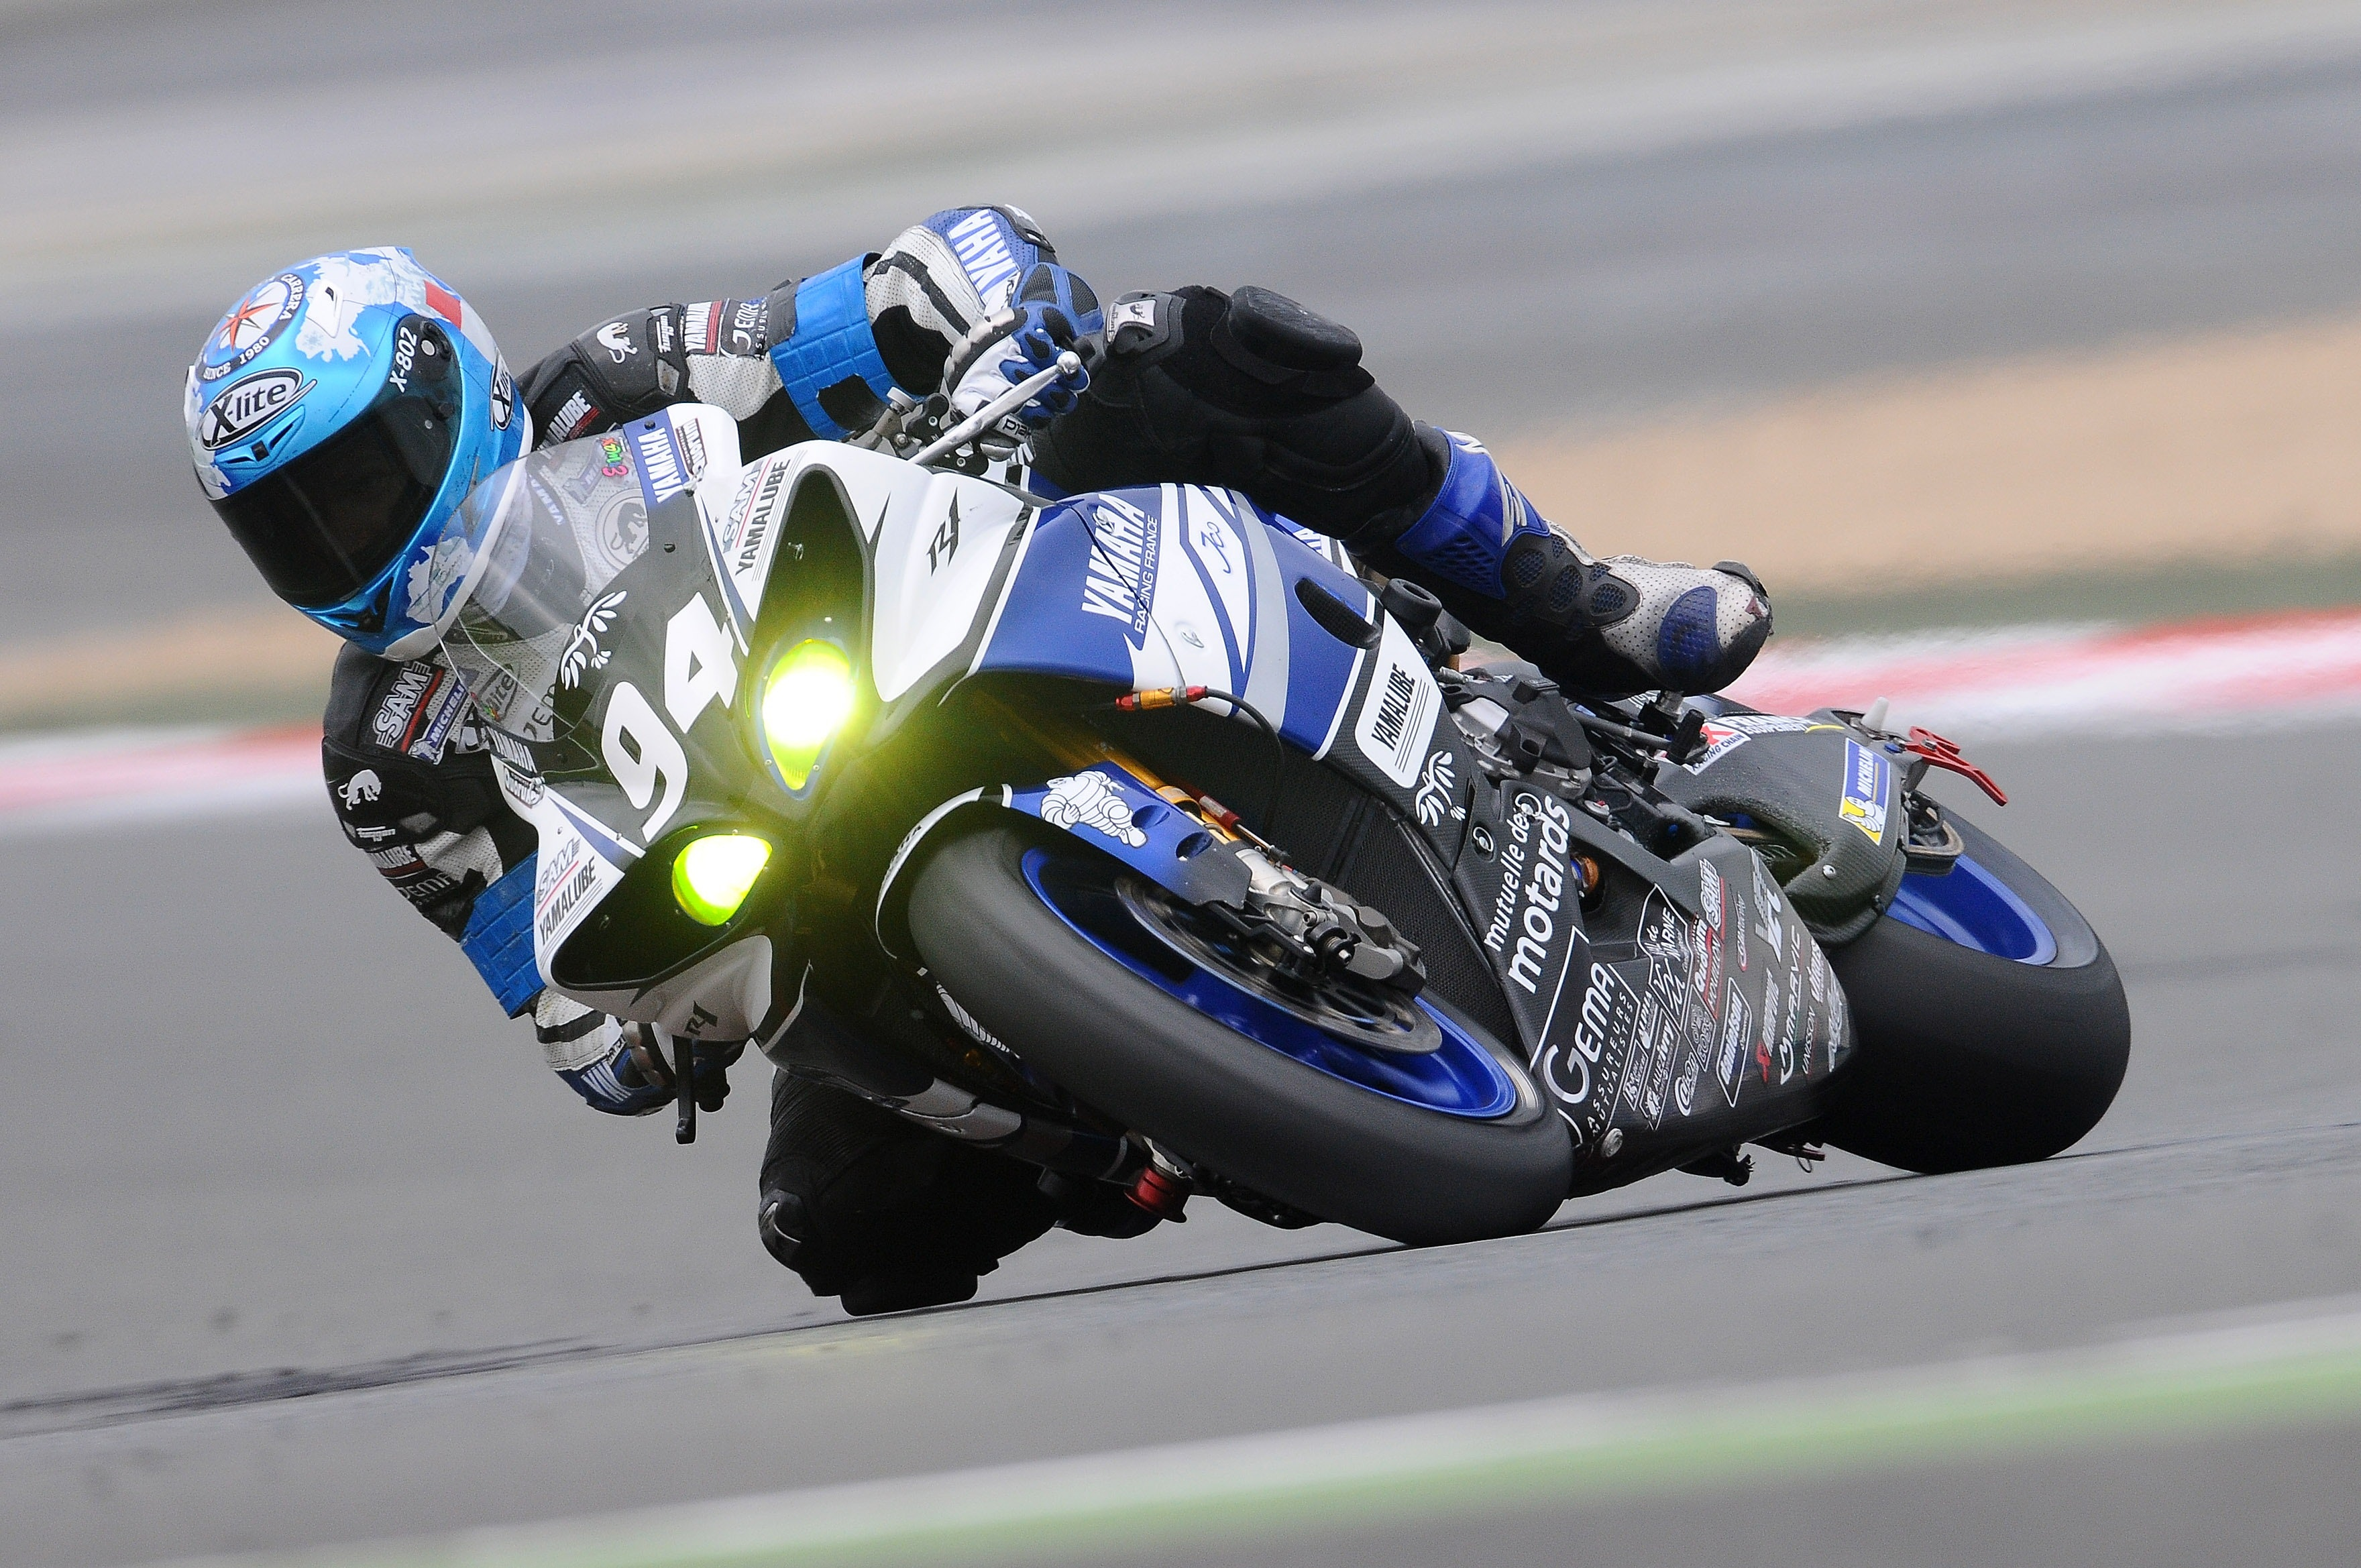 [Bild: motorcycle-racer-racing-race-speed-39693...jpg&fm=jpg]